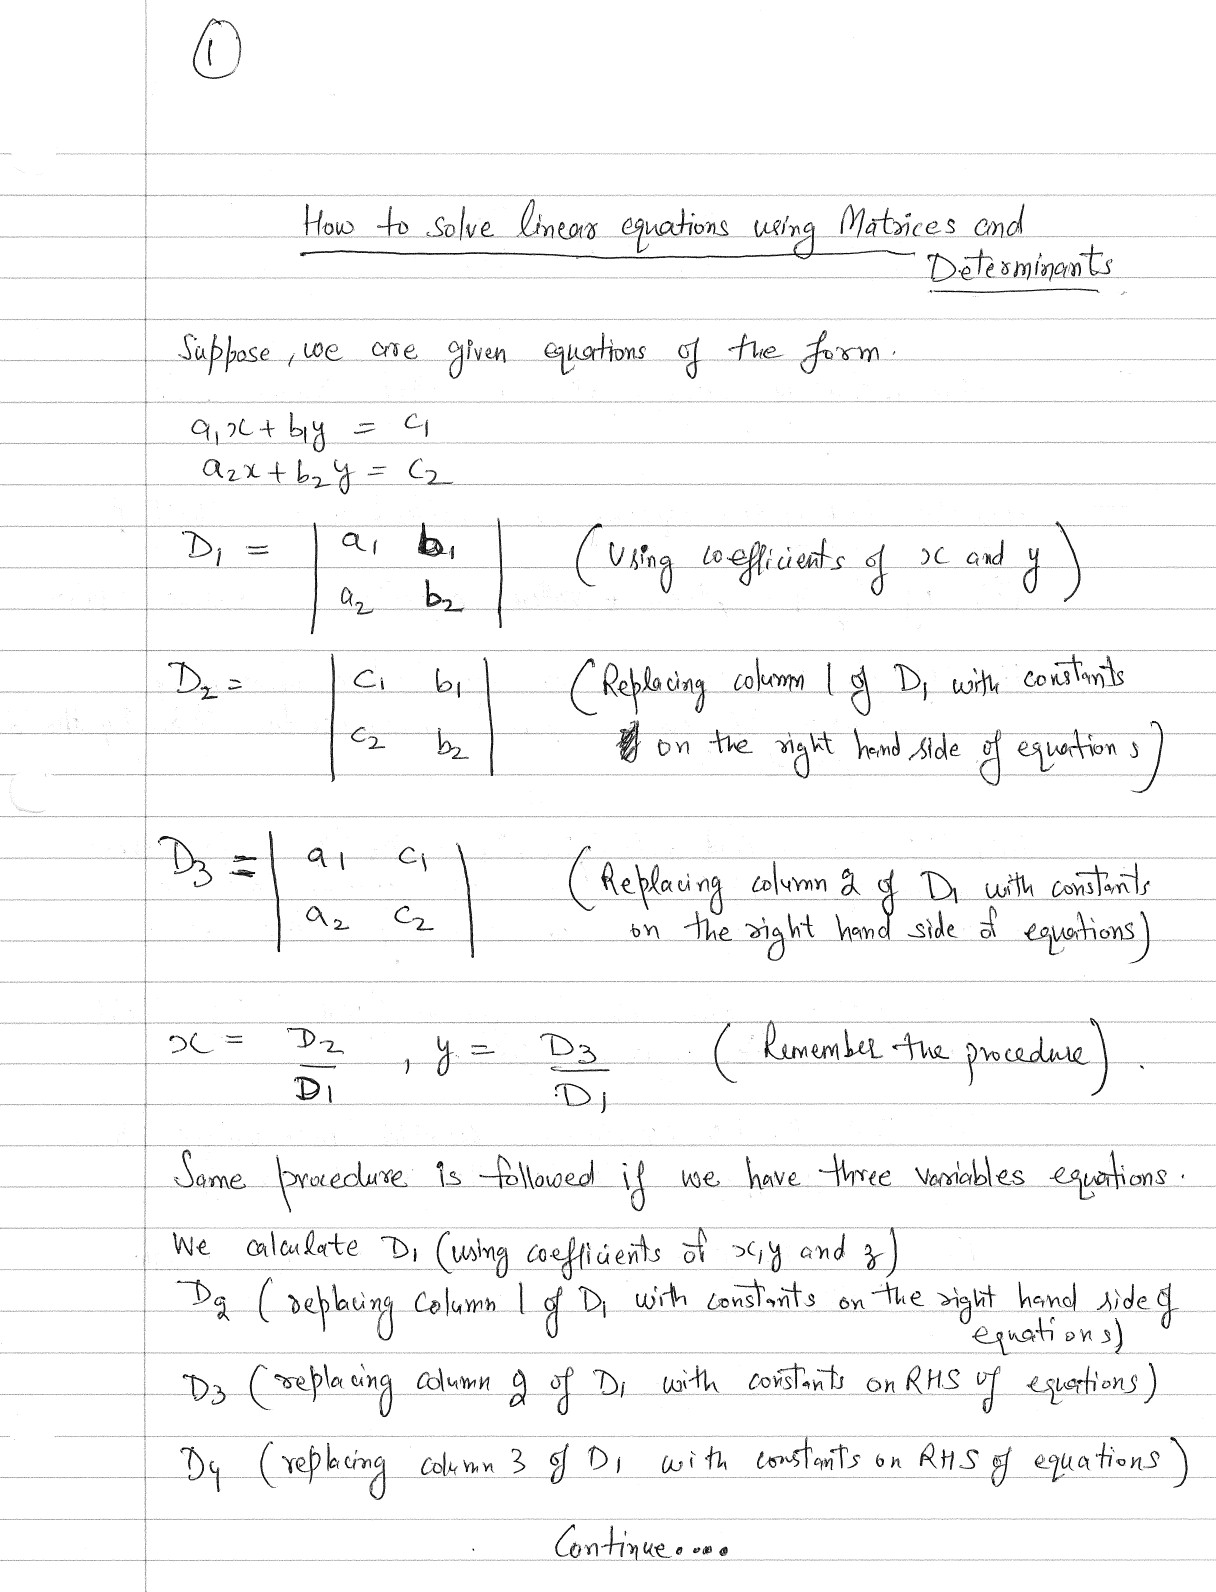 Detail Of Cramer Method To Solve System Of Linear Equations